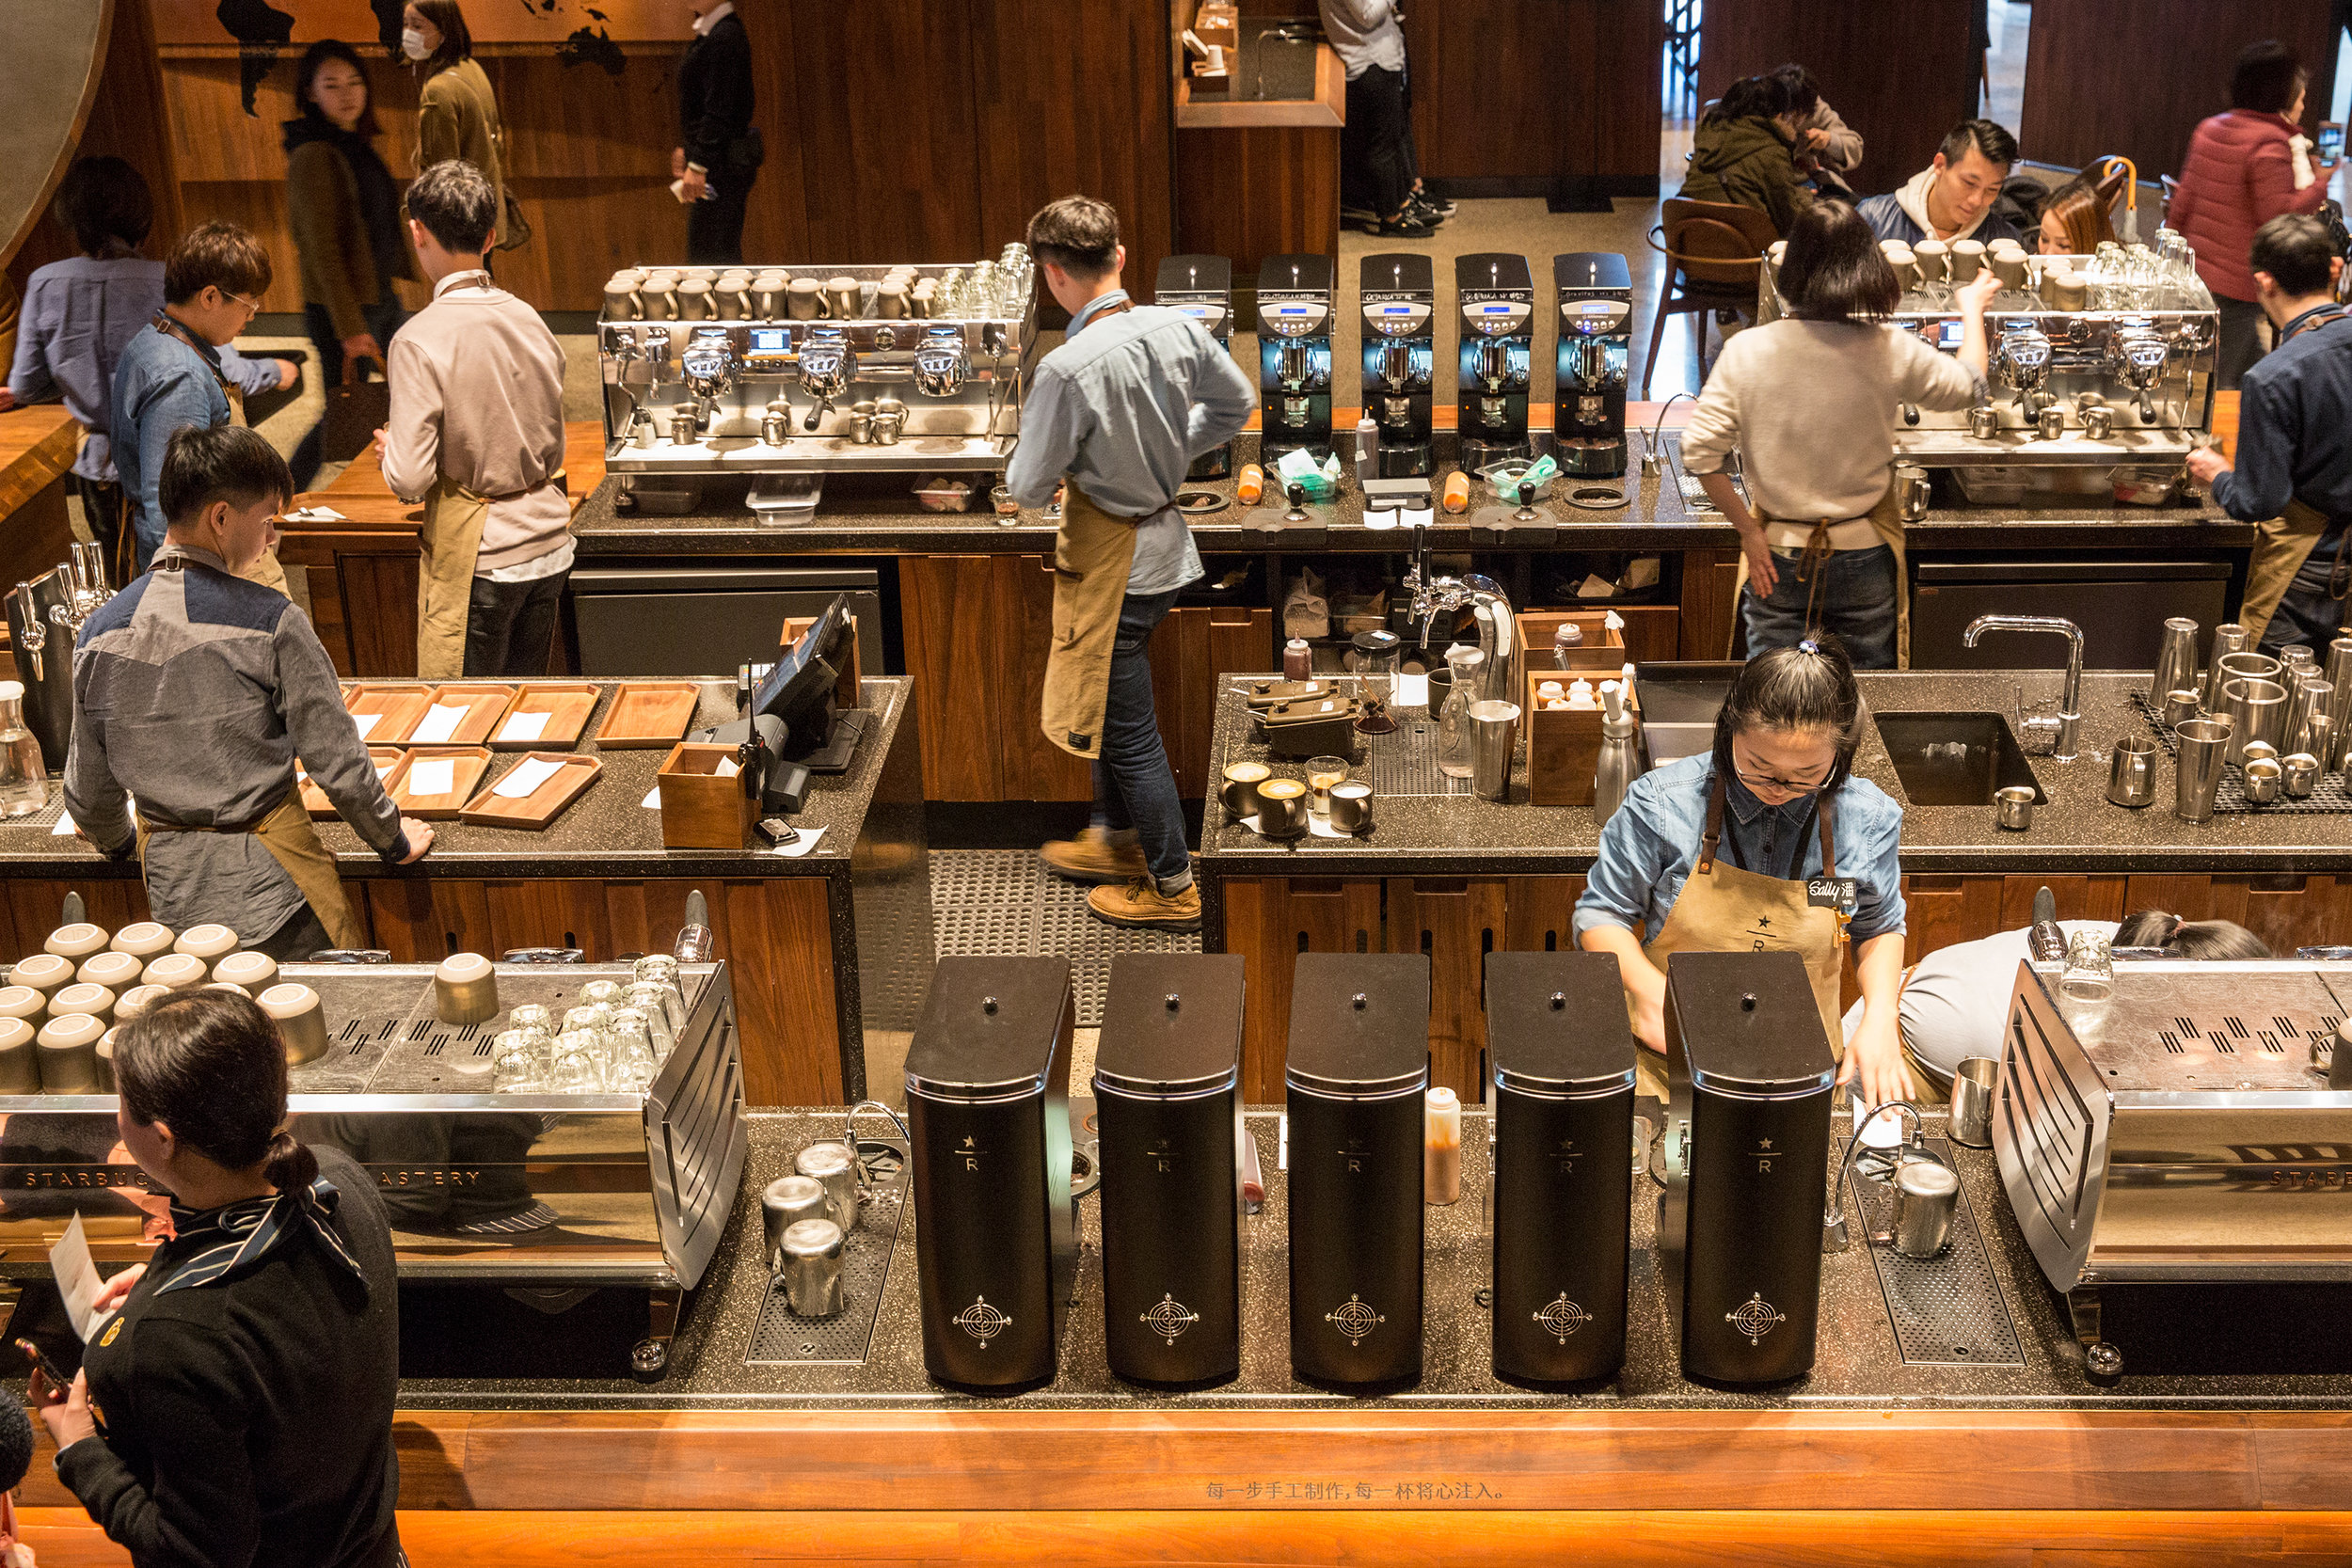 Shanghai Starbucks Roastery.  Photo credit: Moody Man.